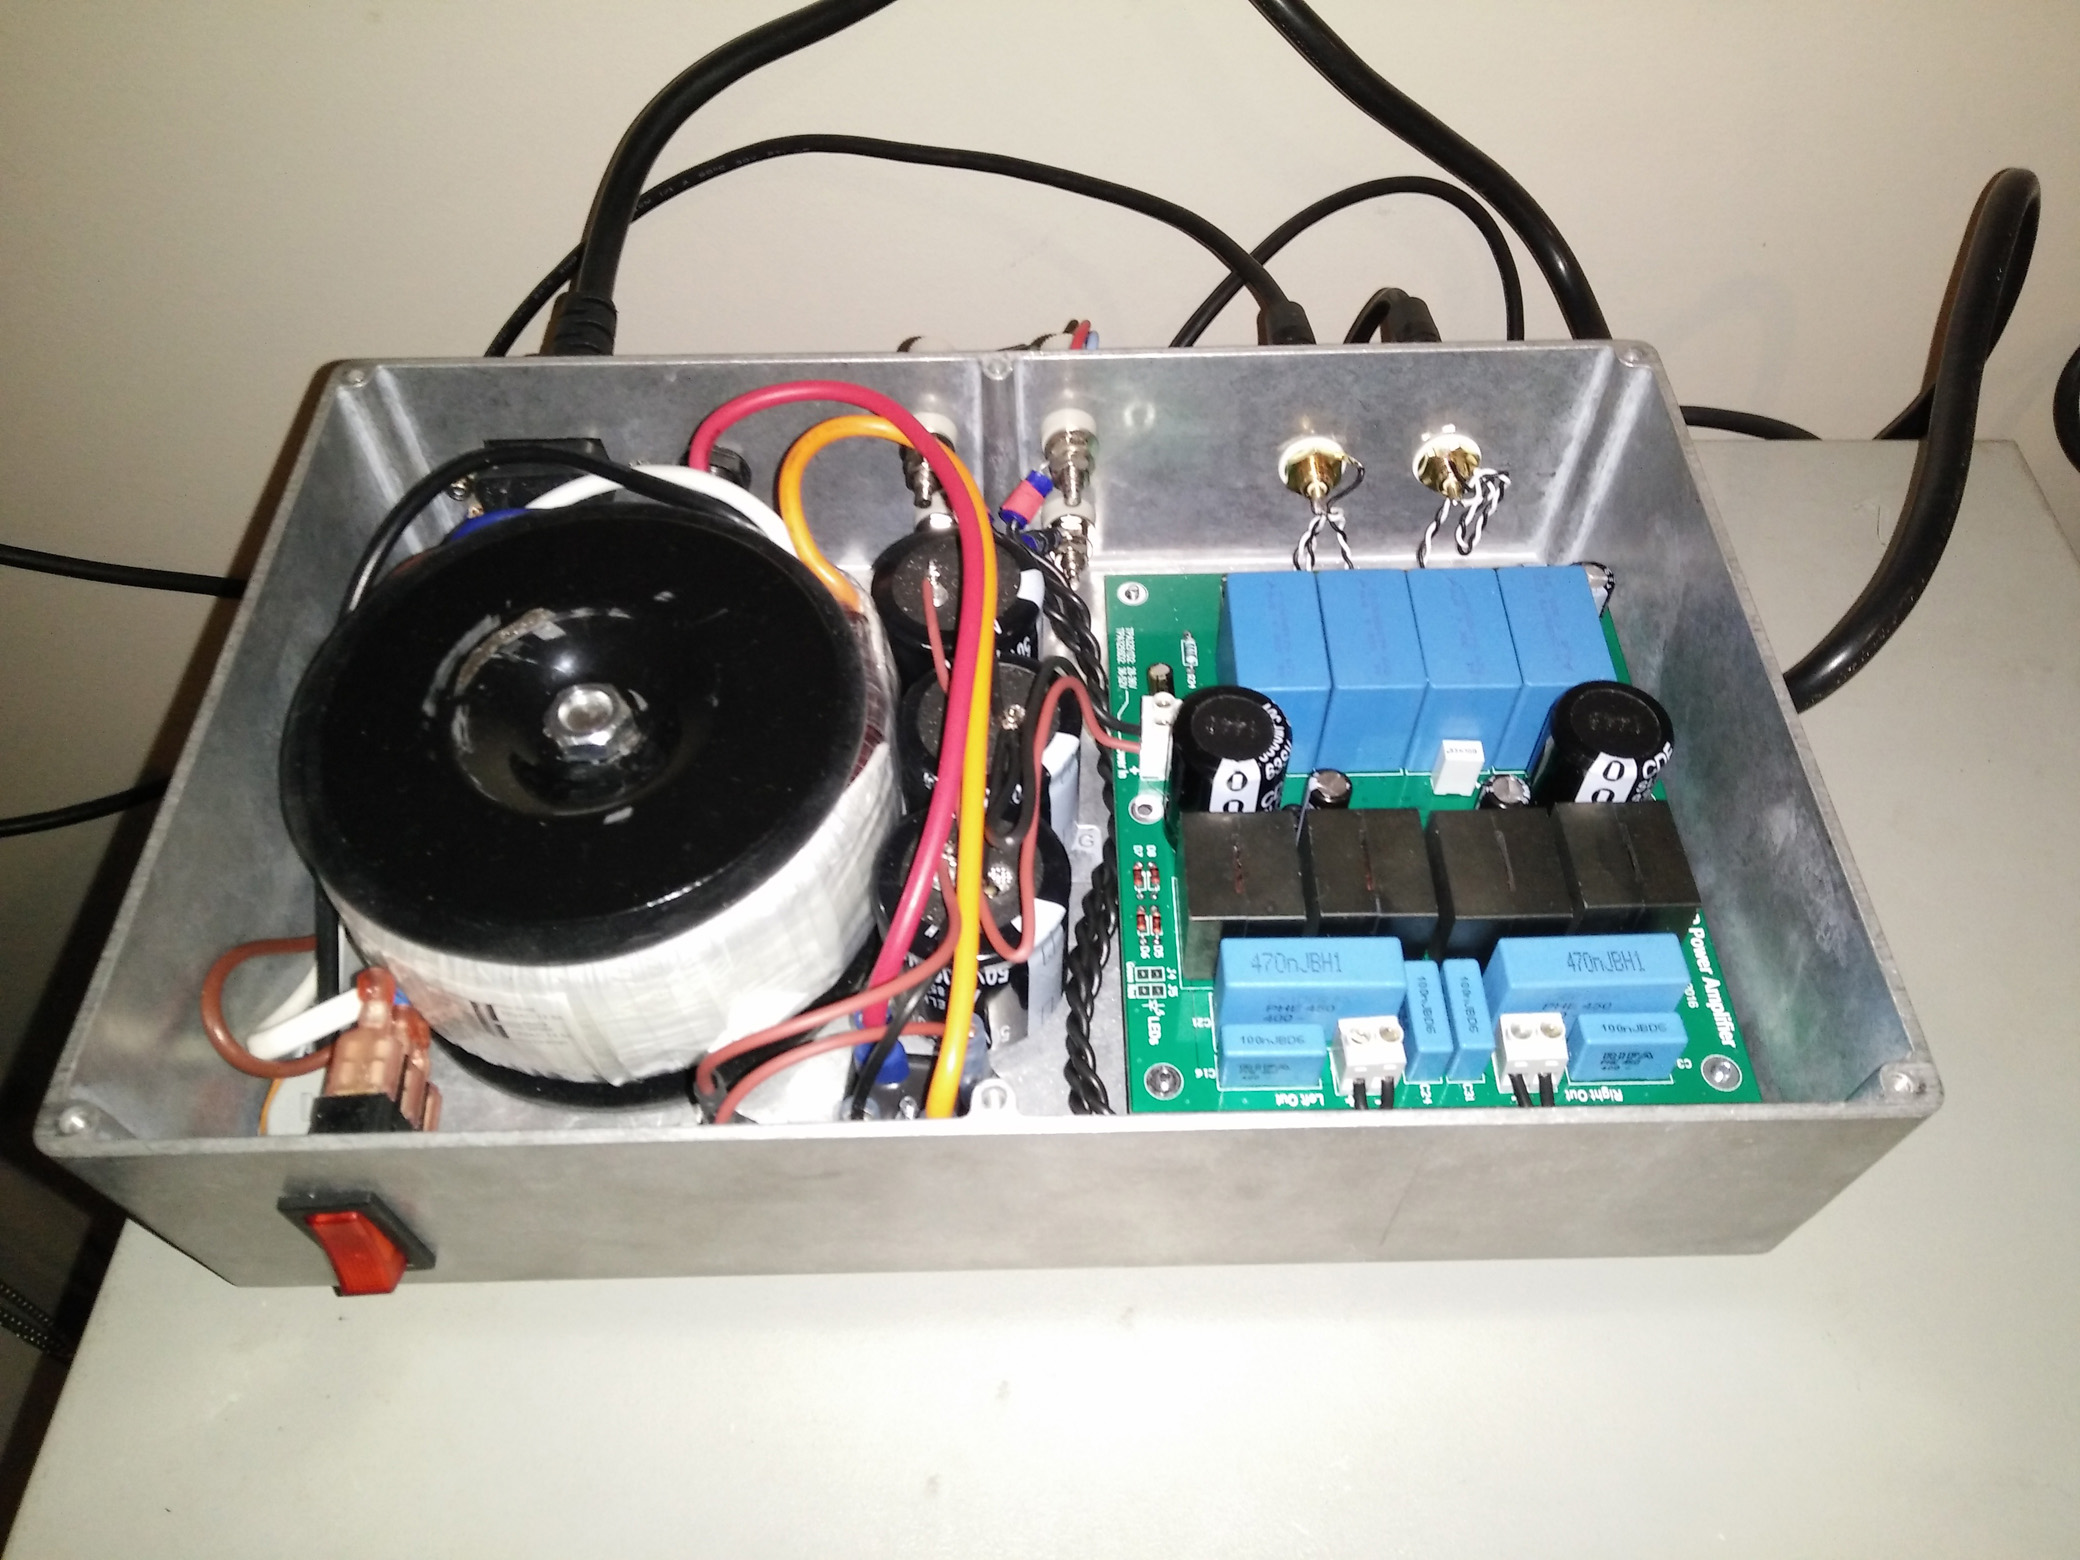 New Chip Amp Design Class D Tpa3251 Page 2 Diy Audio Projects Schematic Help Needed Diyaudio Recommended Posts